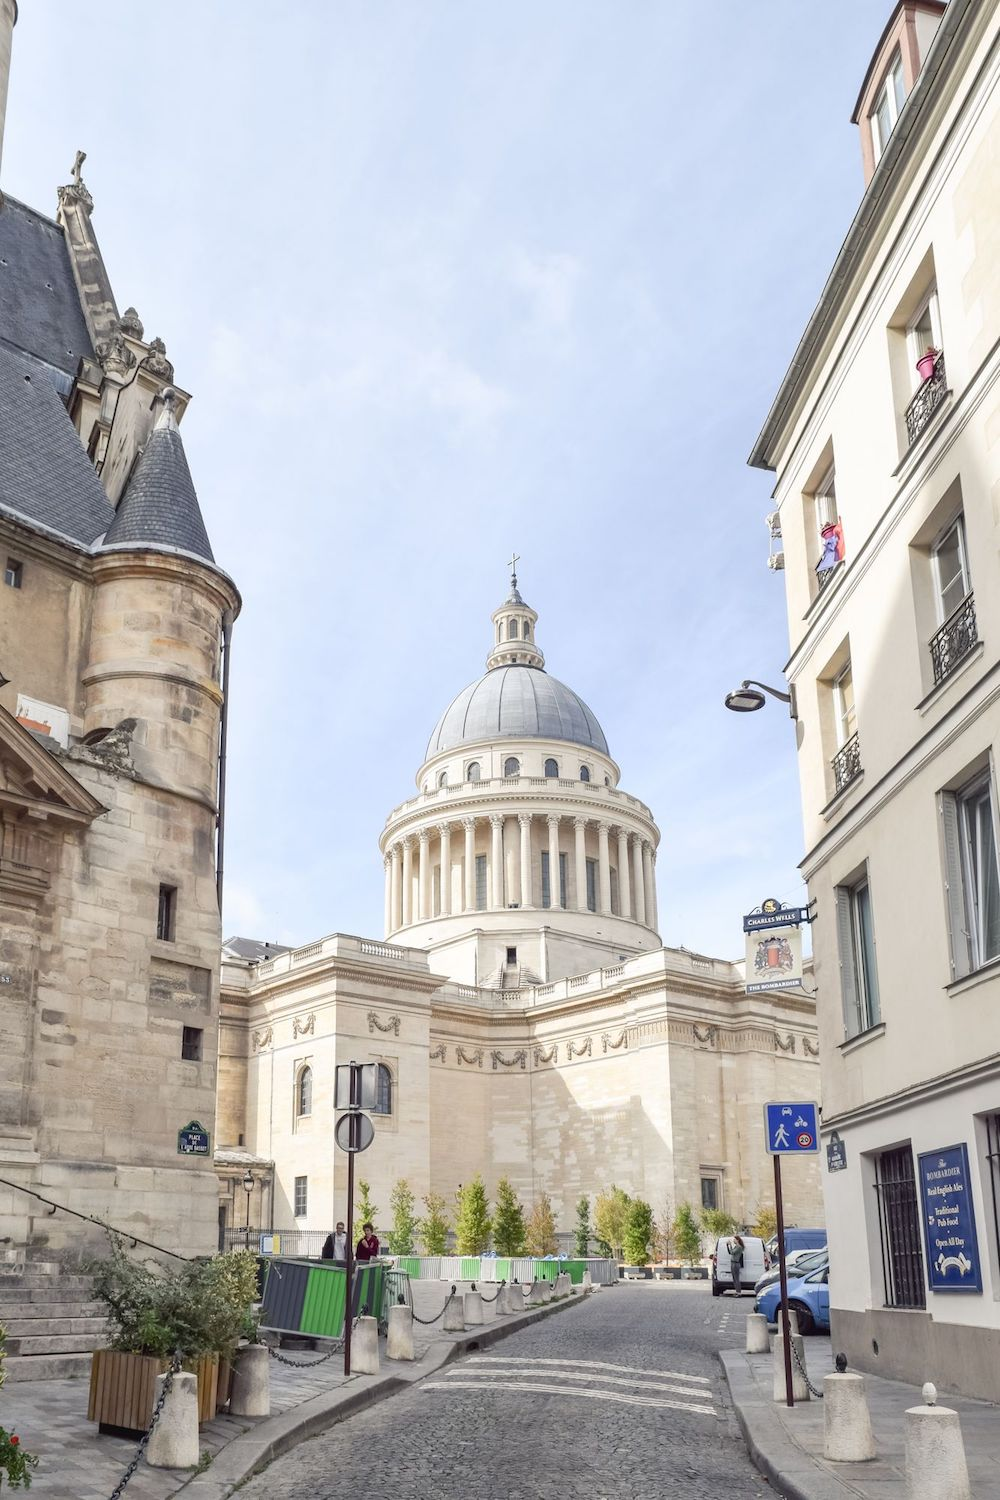 View of the Panthéon from Rue de la Montagne Sainte Geneviève in Paris